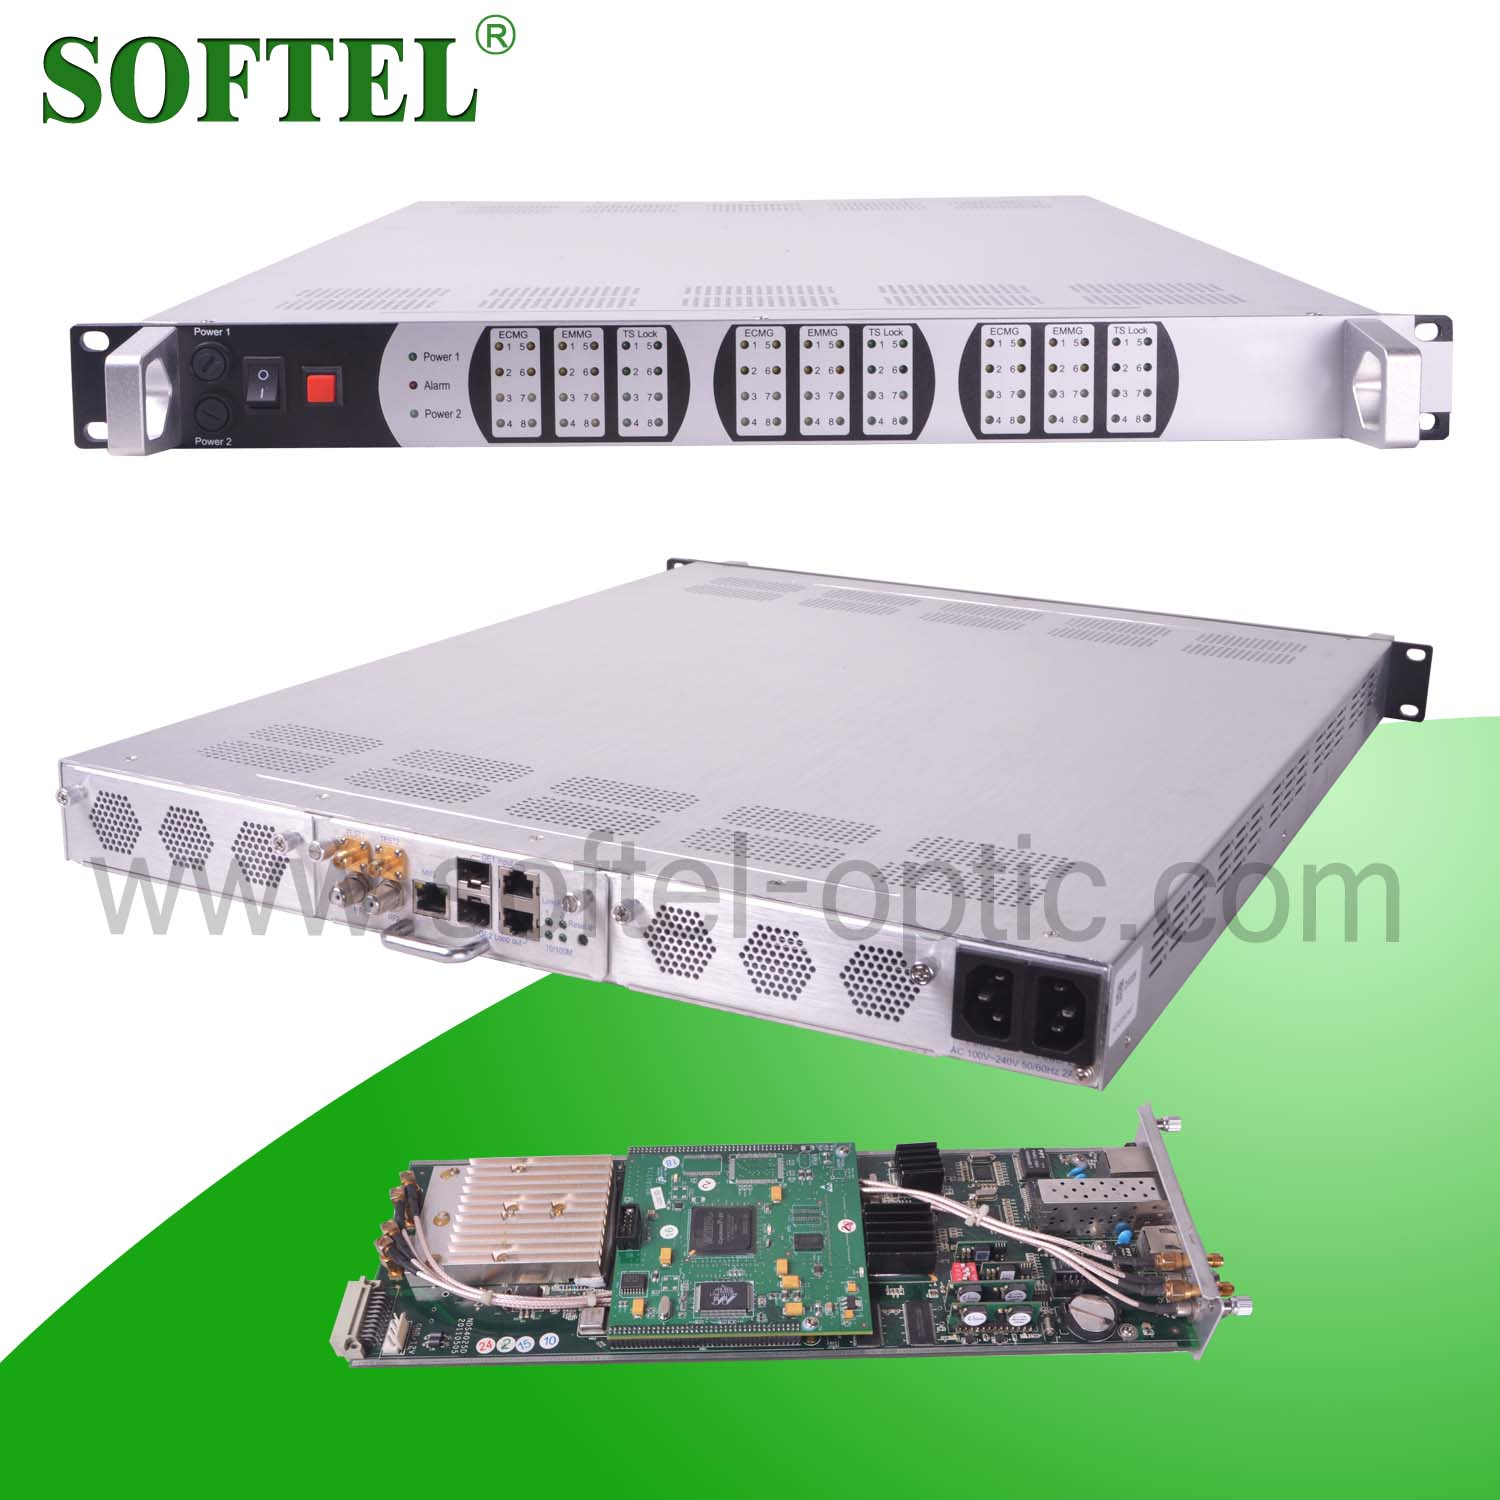 SFT328A dvb-c qam modulator,2 RF input/UDP/RTP / 1U support 3 module,4 U supprt 12 modules/headend products